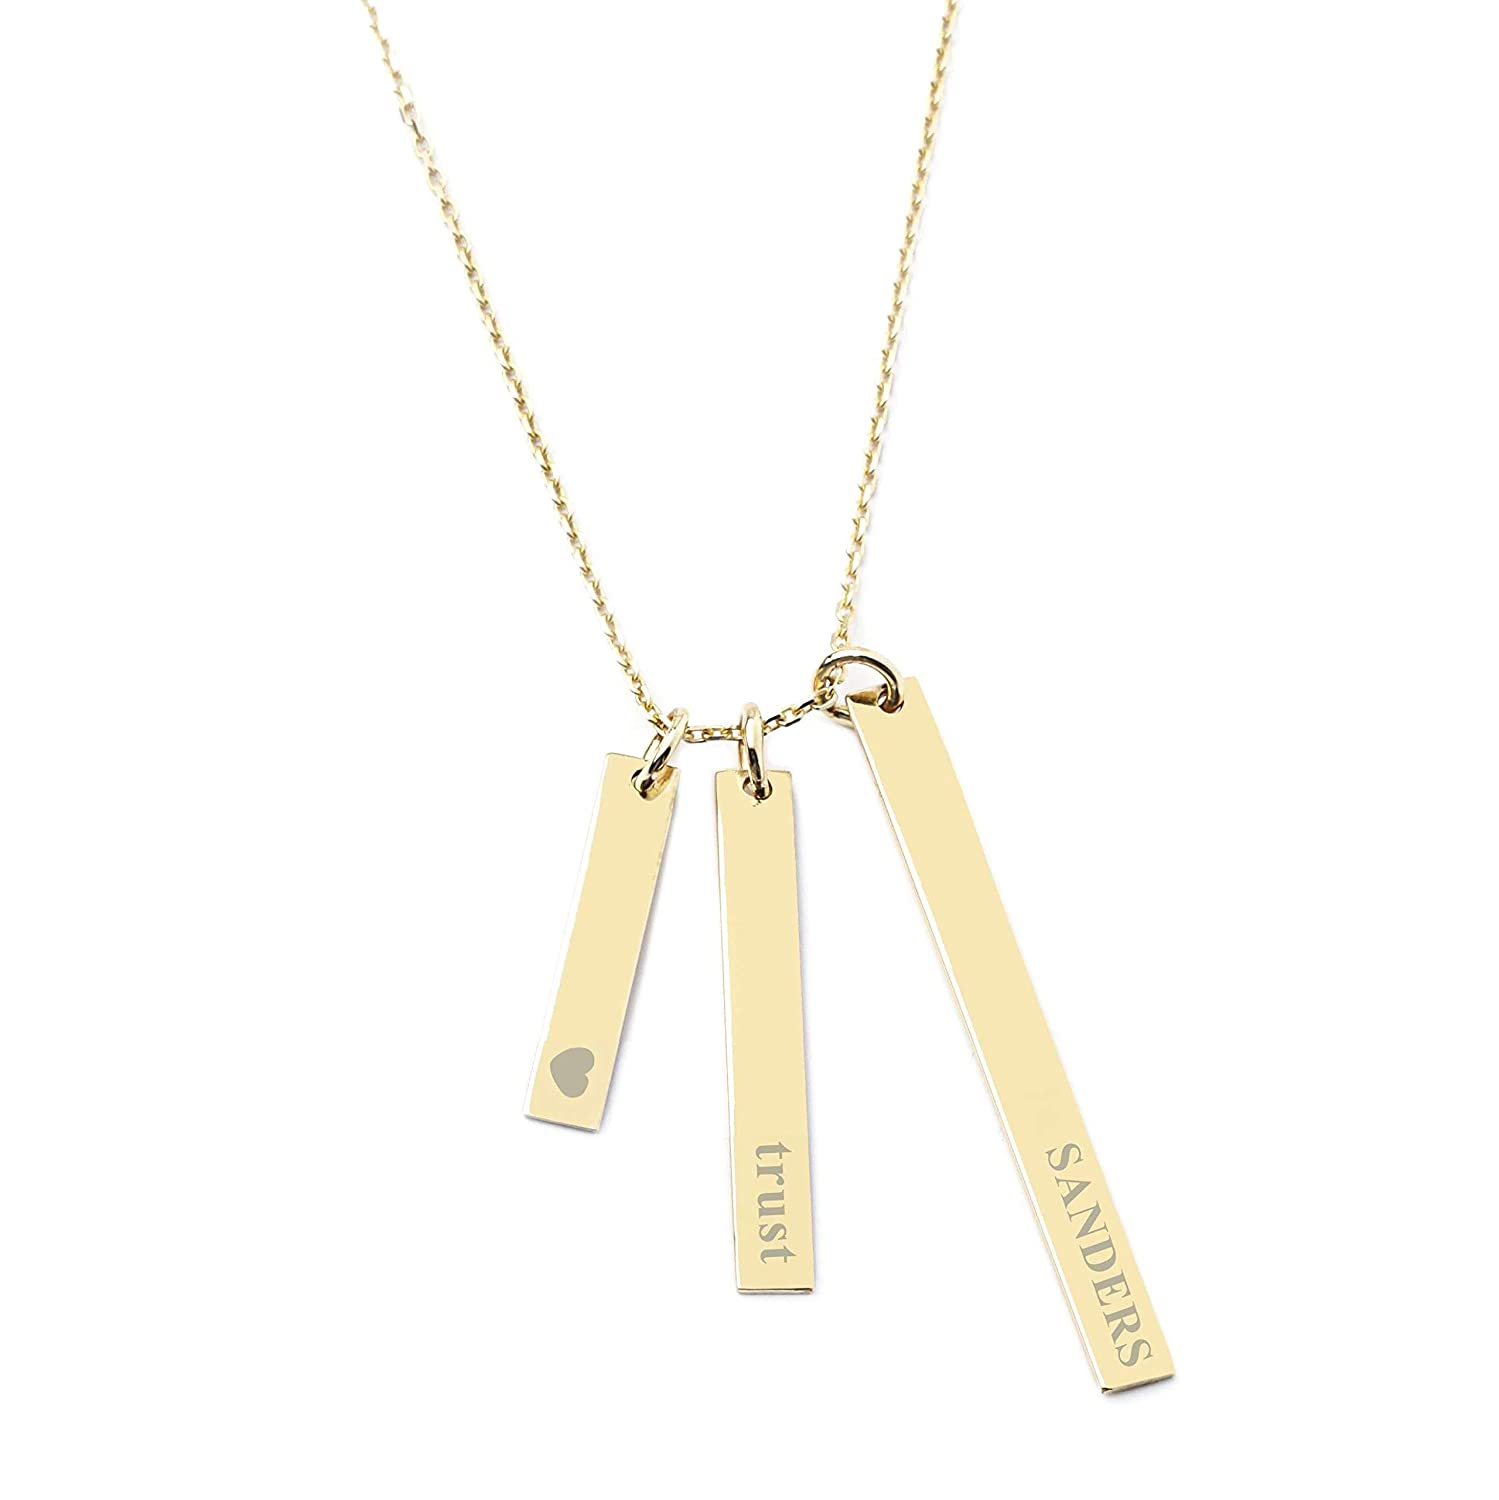 Name Word Bar Necklaces Rose Gold Silver or Gold Wedding Bridesmaids Mom